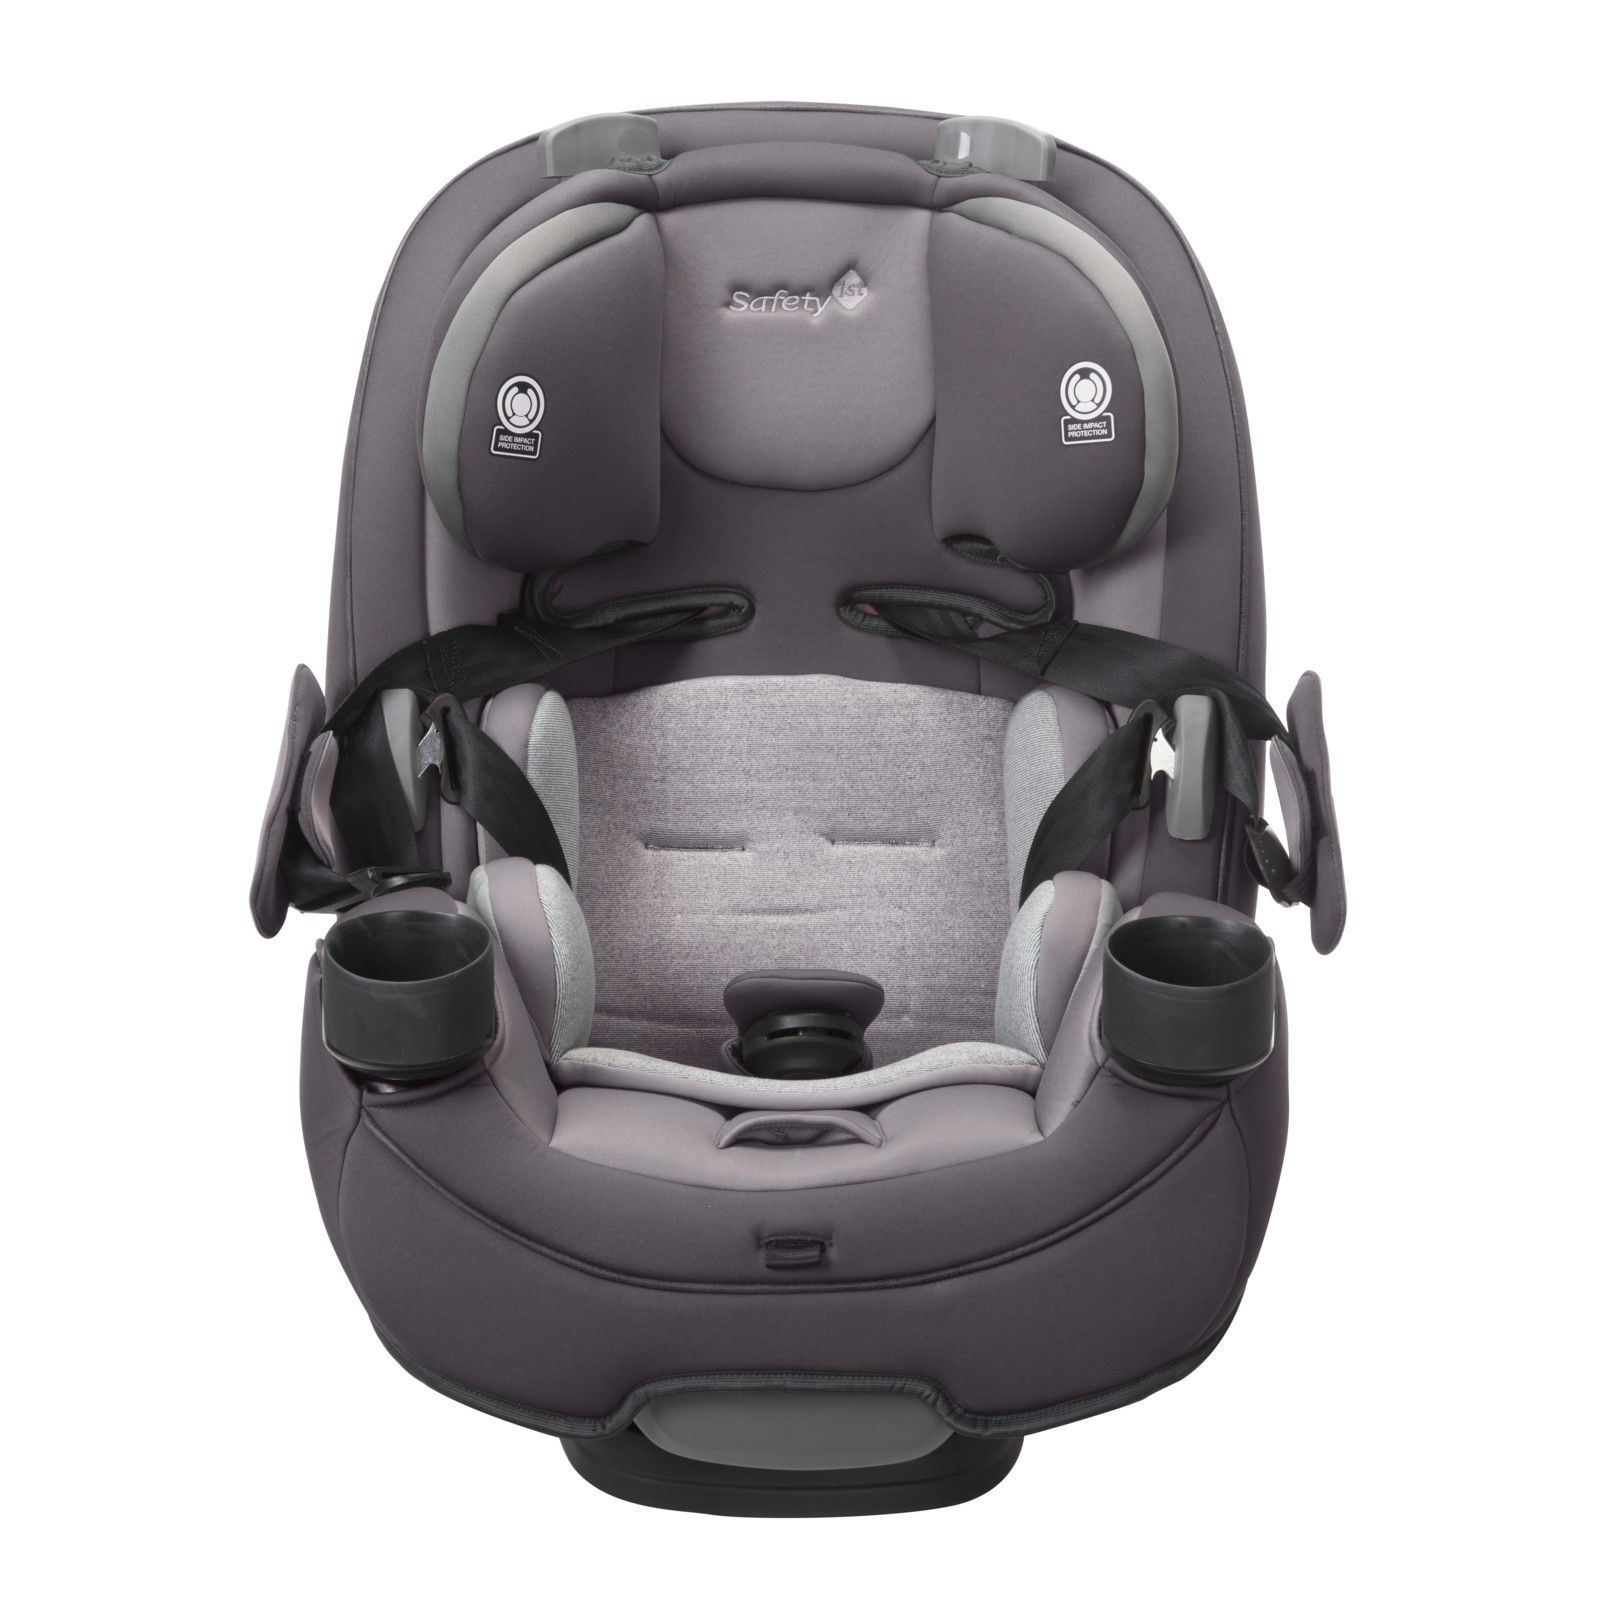 Safety 1st Grow Go 3 In 1 Convertible Car Seat Choose Your Fashion